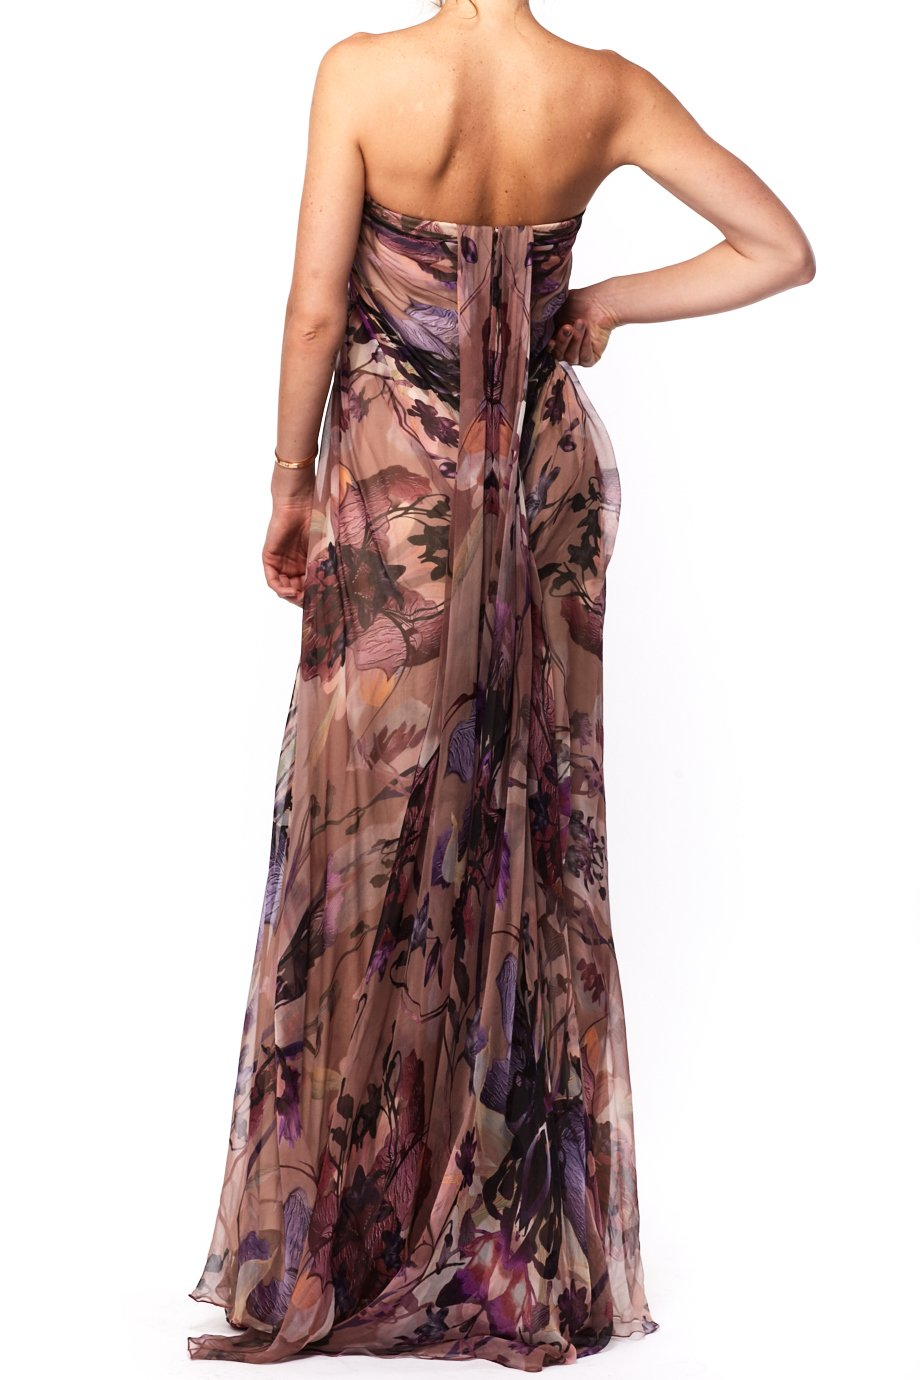 Alexander McQueen Pink and Purple Floral Silk Strapless Bustier Gown